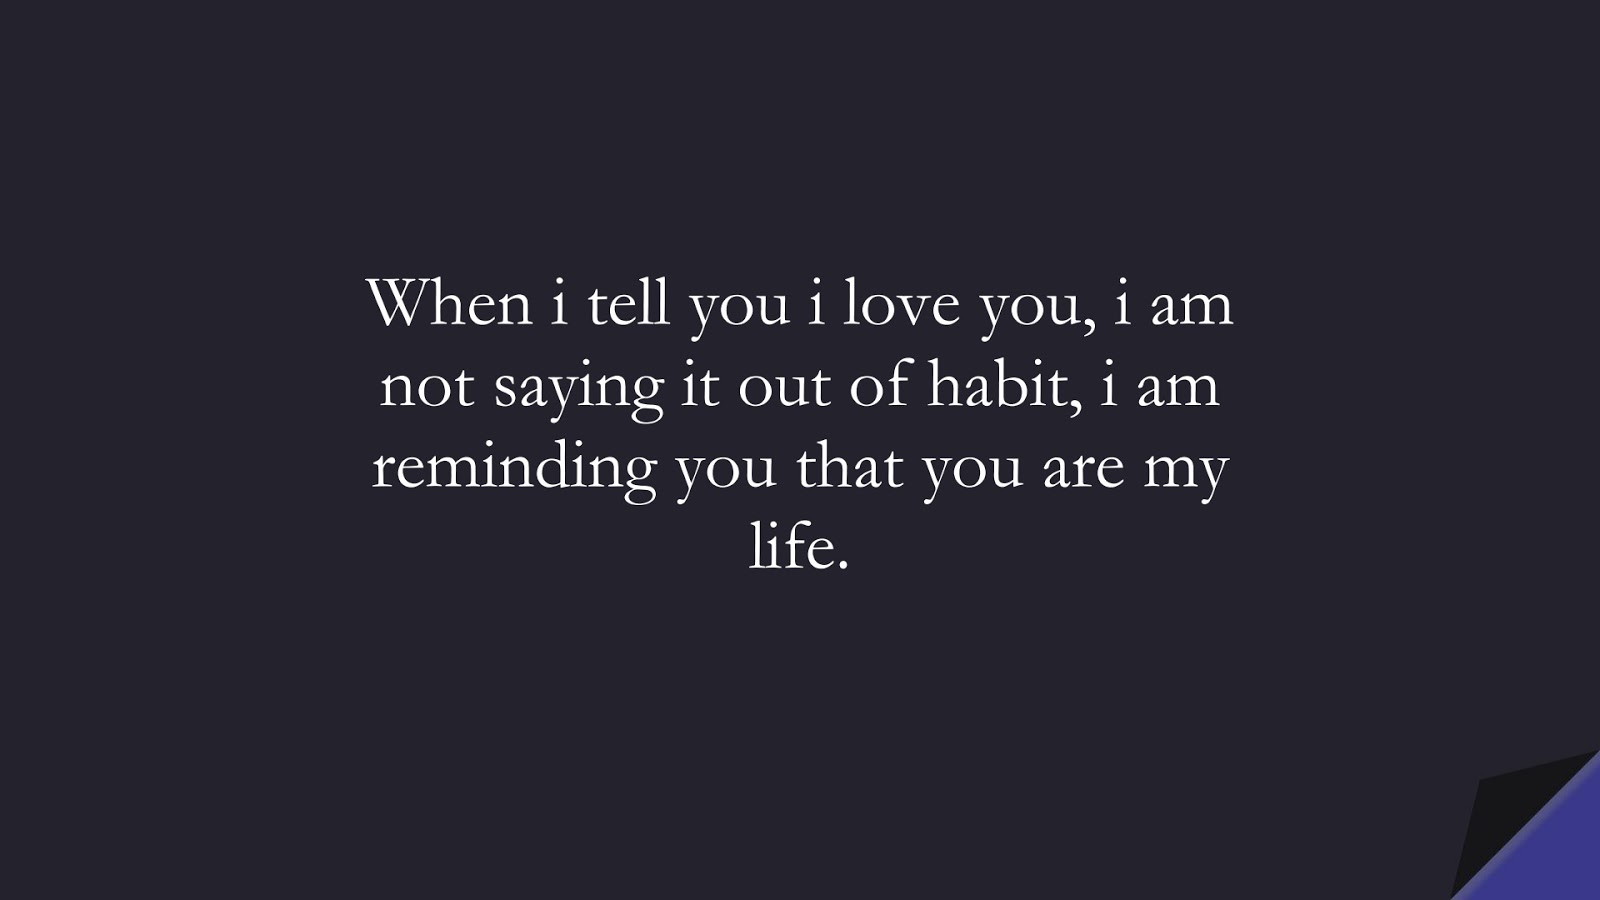 When i tell you i love you, i am not saying it out of habit, i am reminding you that you are my life.FALSE